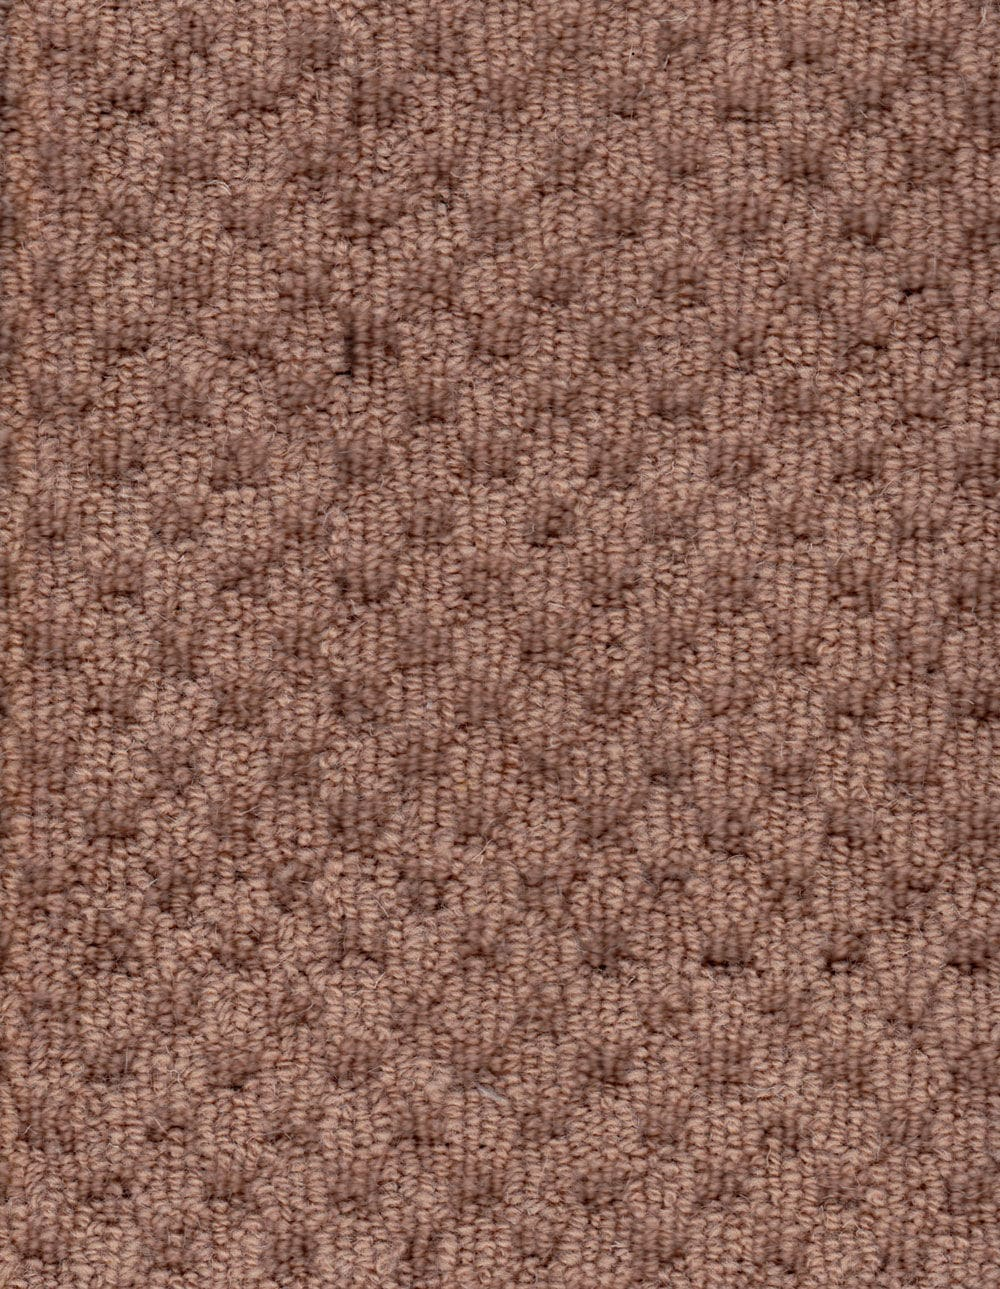 Boat Floor Covering / Wool / Carpet   Camel Textured